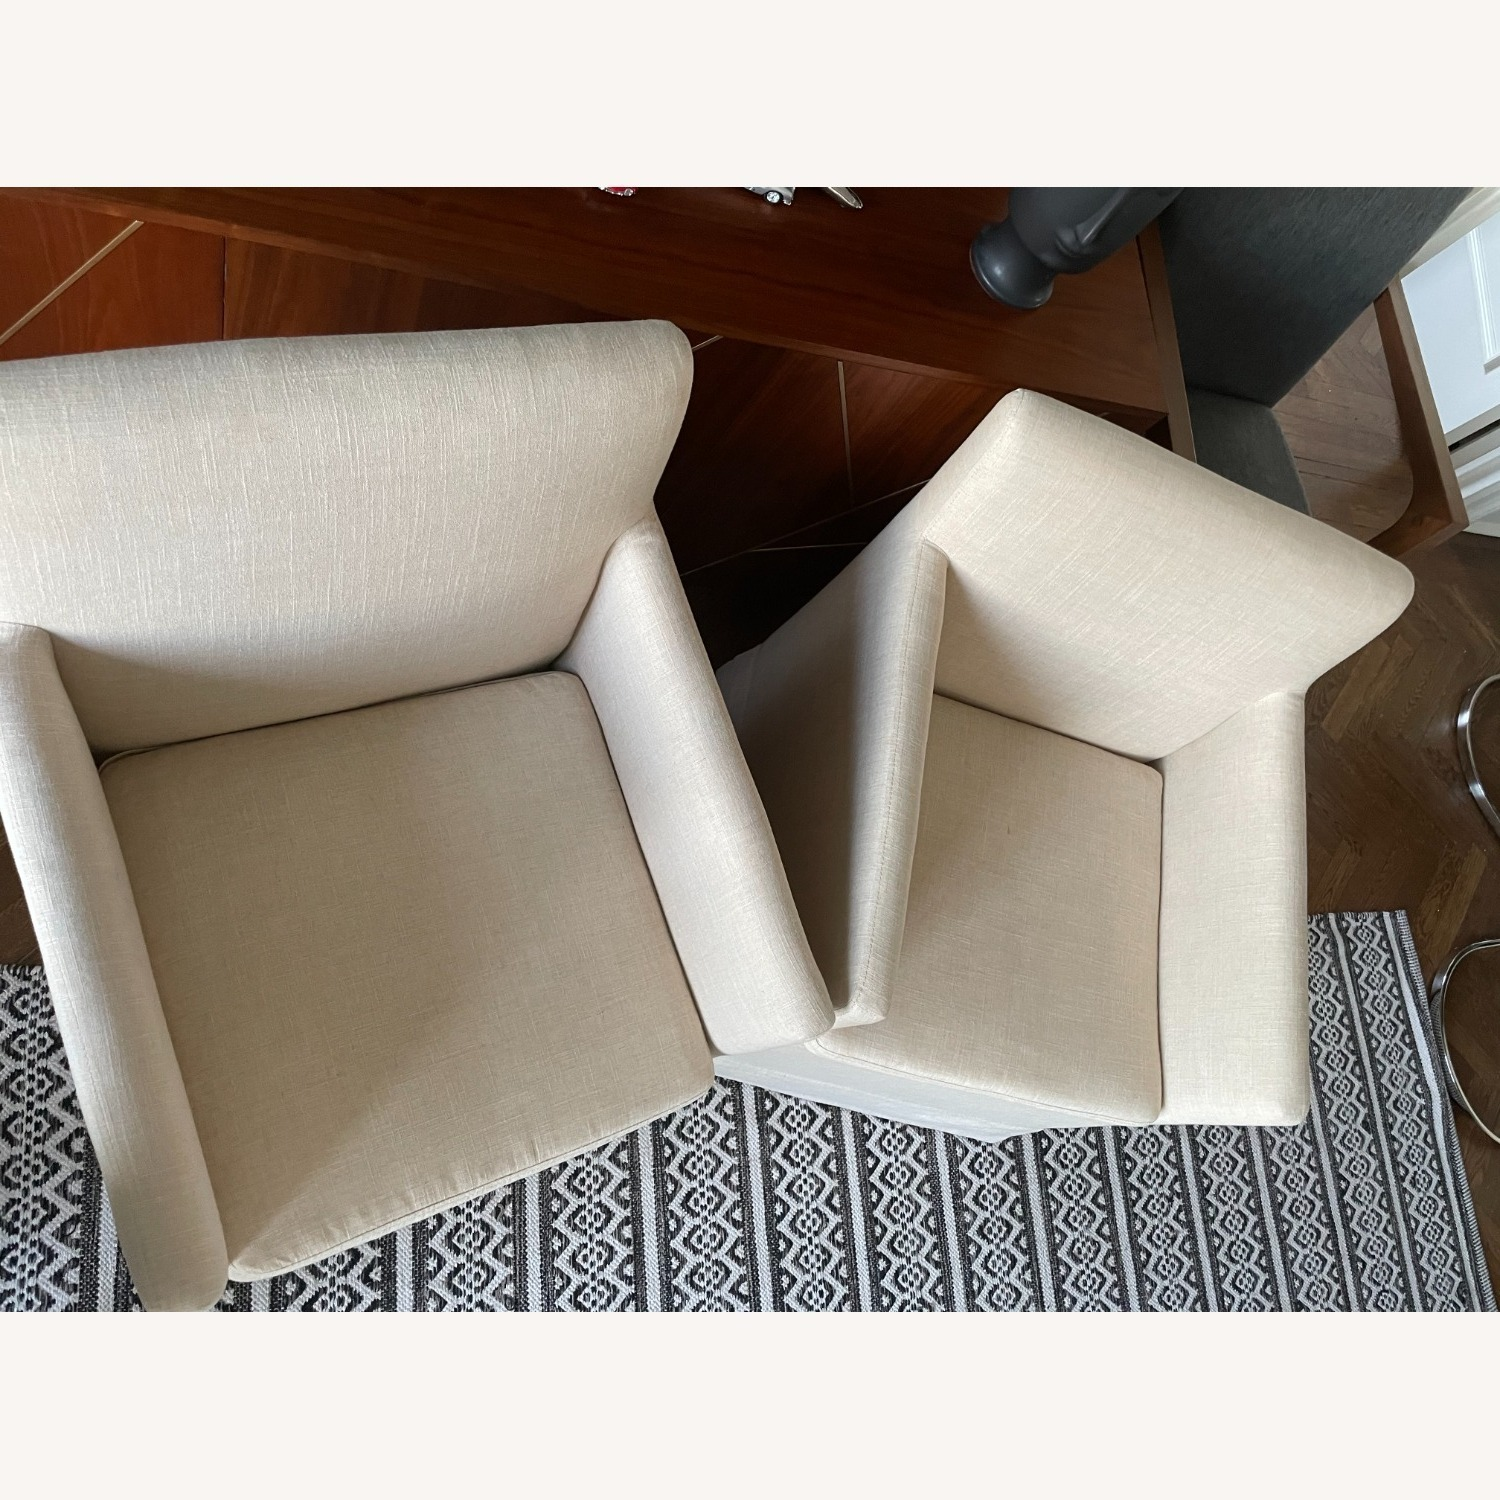 Pair of Linen Colored Fabric Chairs - image-2